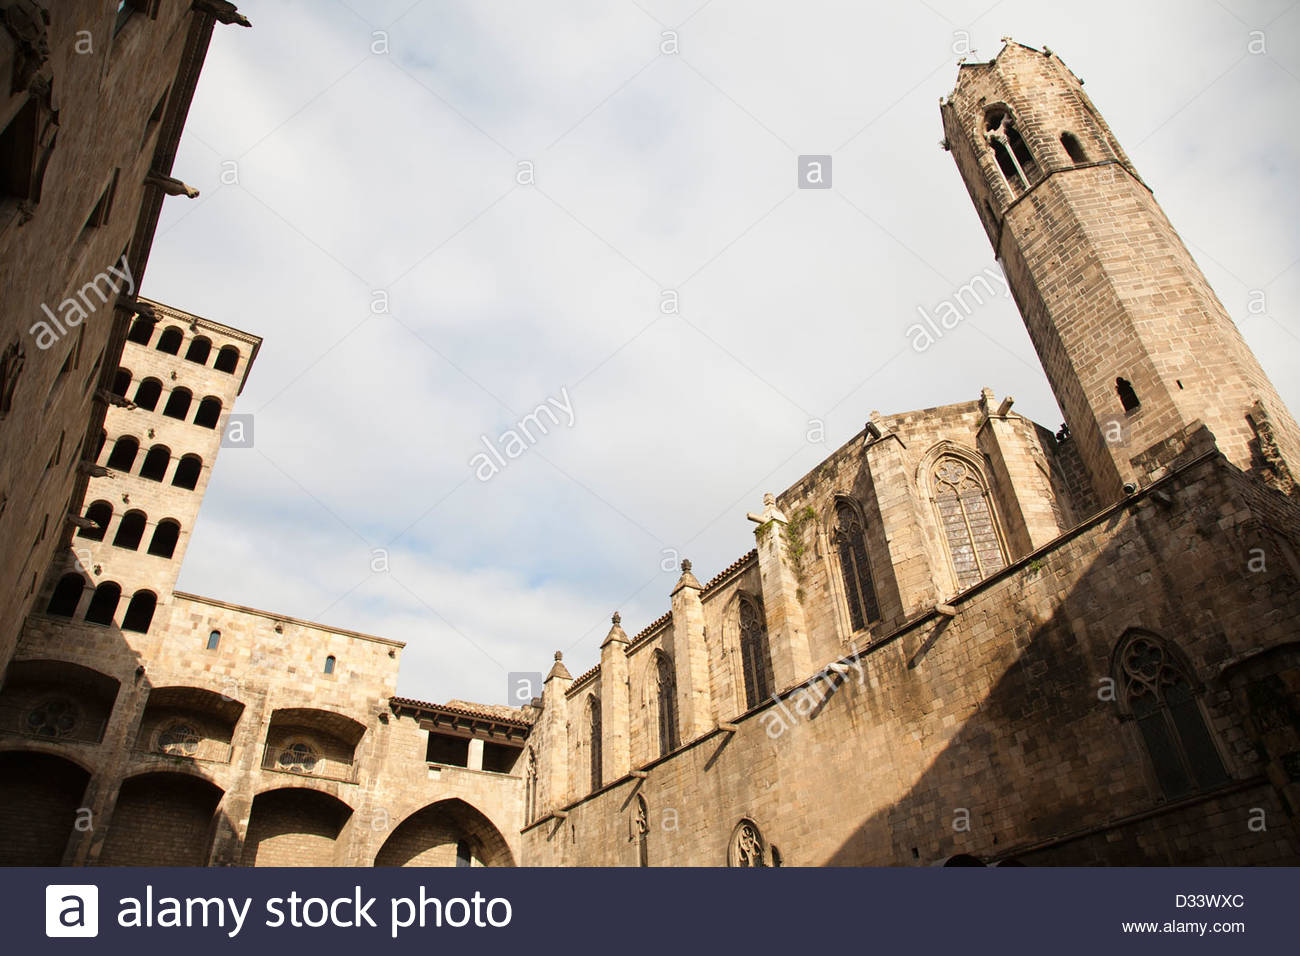 palau real major,placa del rei,gothic quarter,barcelona,catalonia,spain,europe - Stock Image